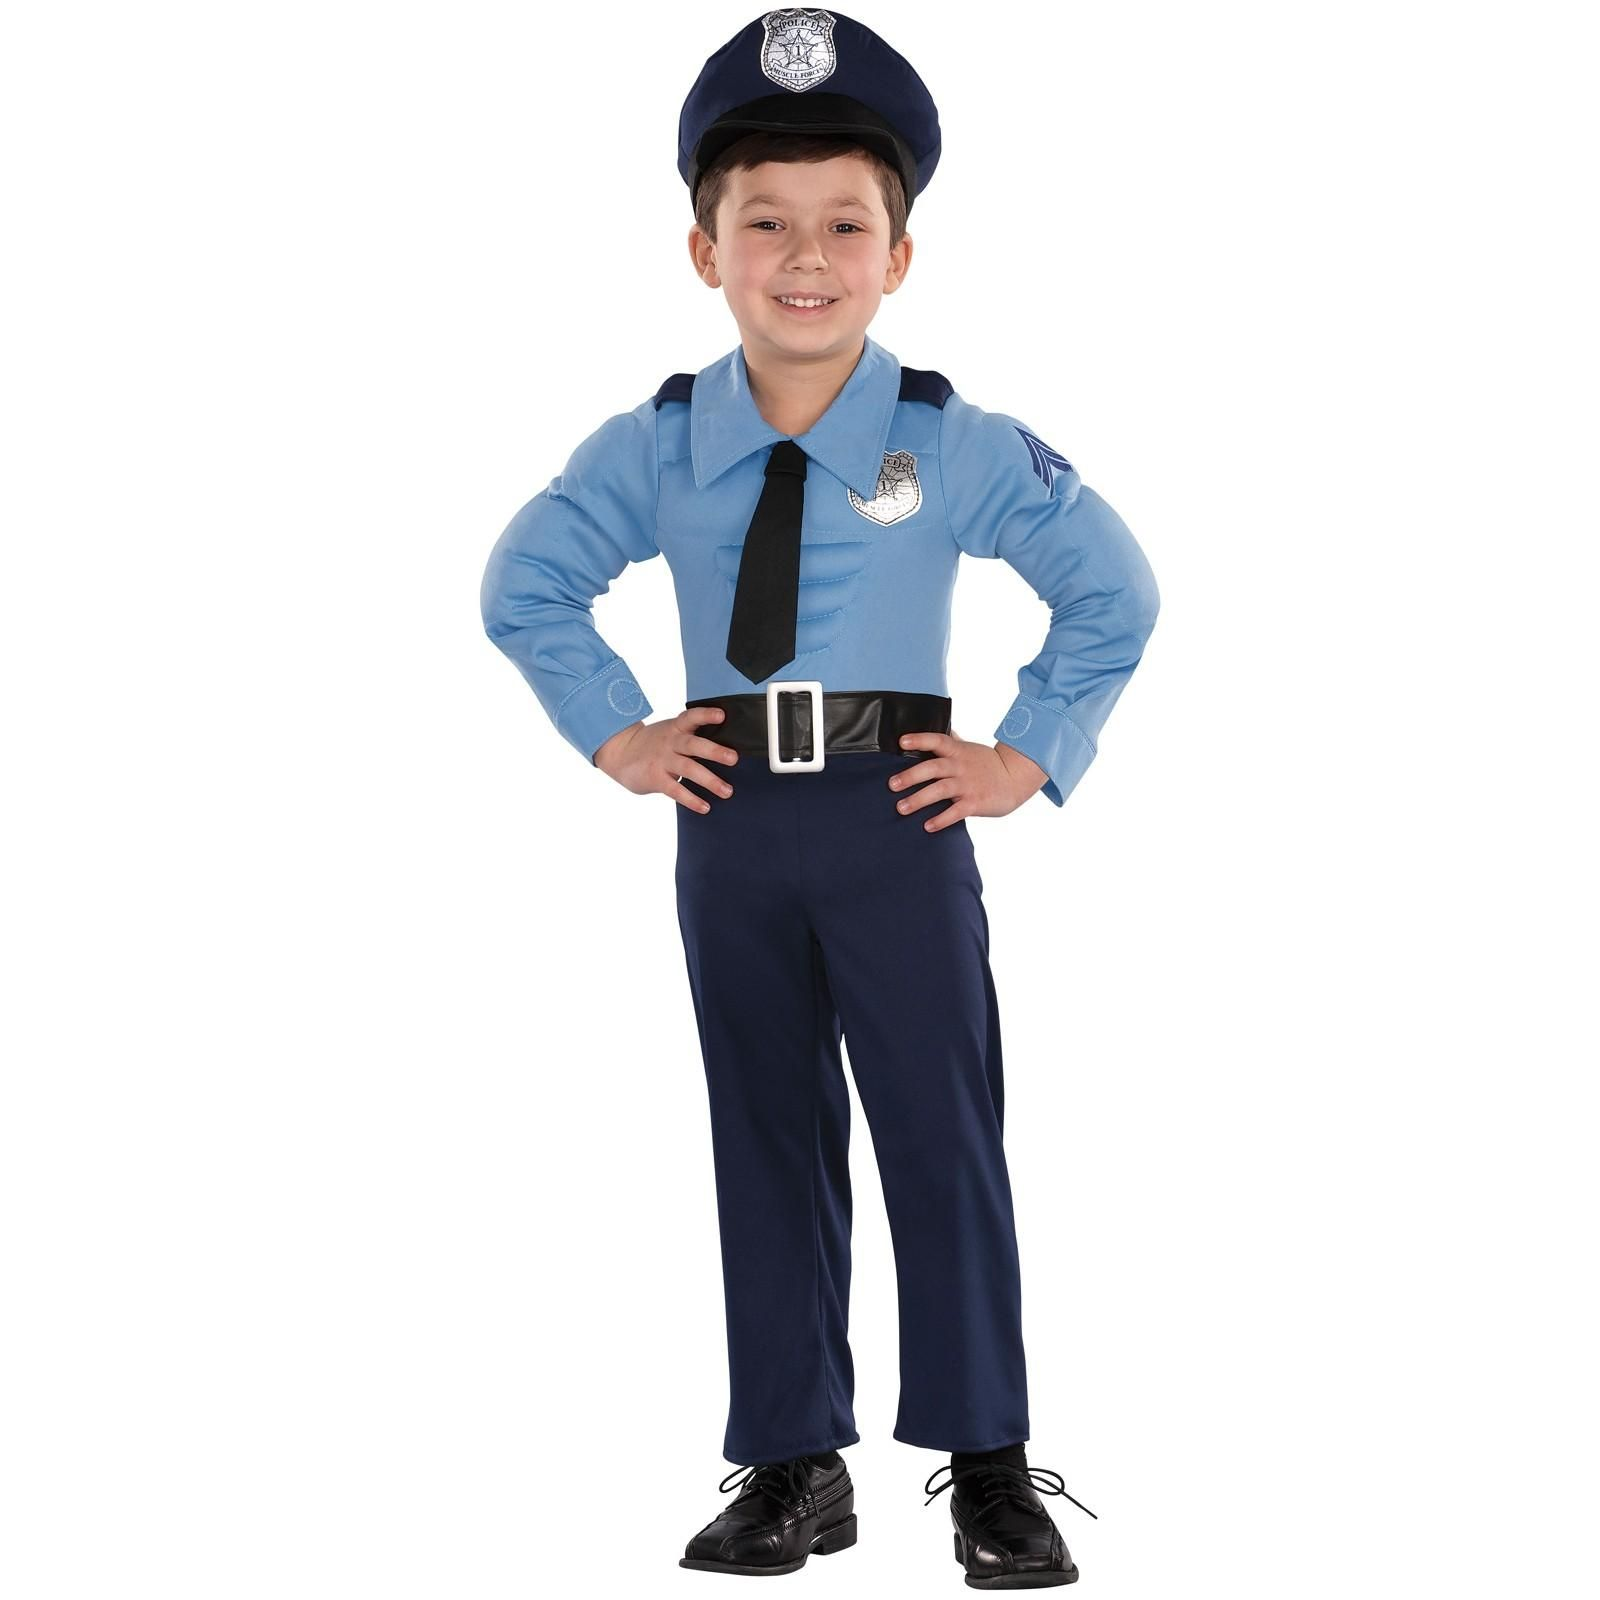 police officer toddler costume halloween toddler if you want your little one to serve up a heaping healthy meal of justice then all he needs is this toddler muscle chest police costume to get him started